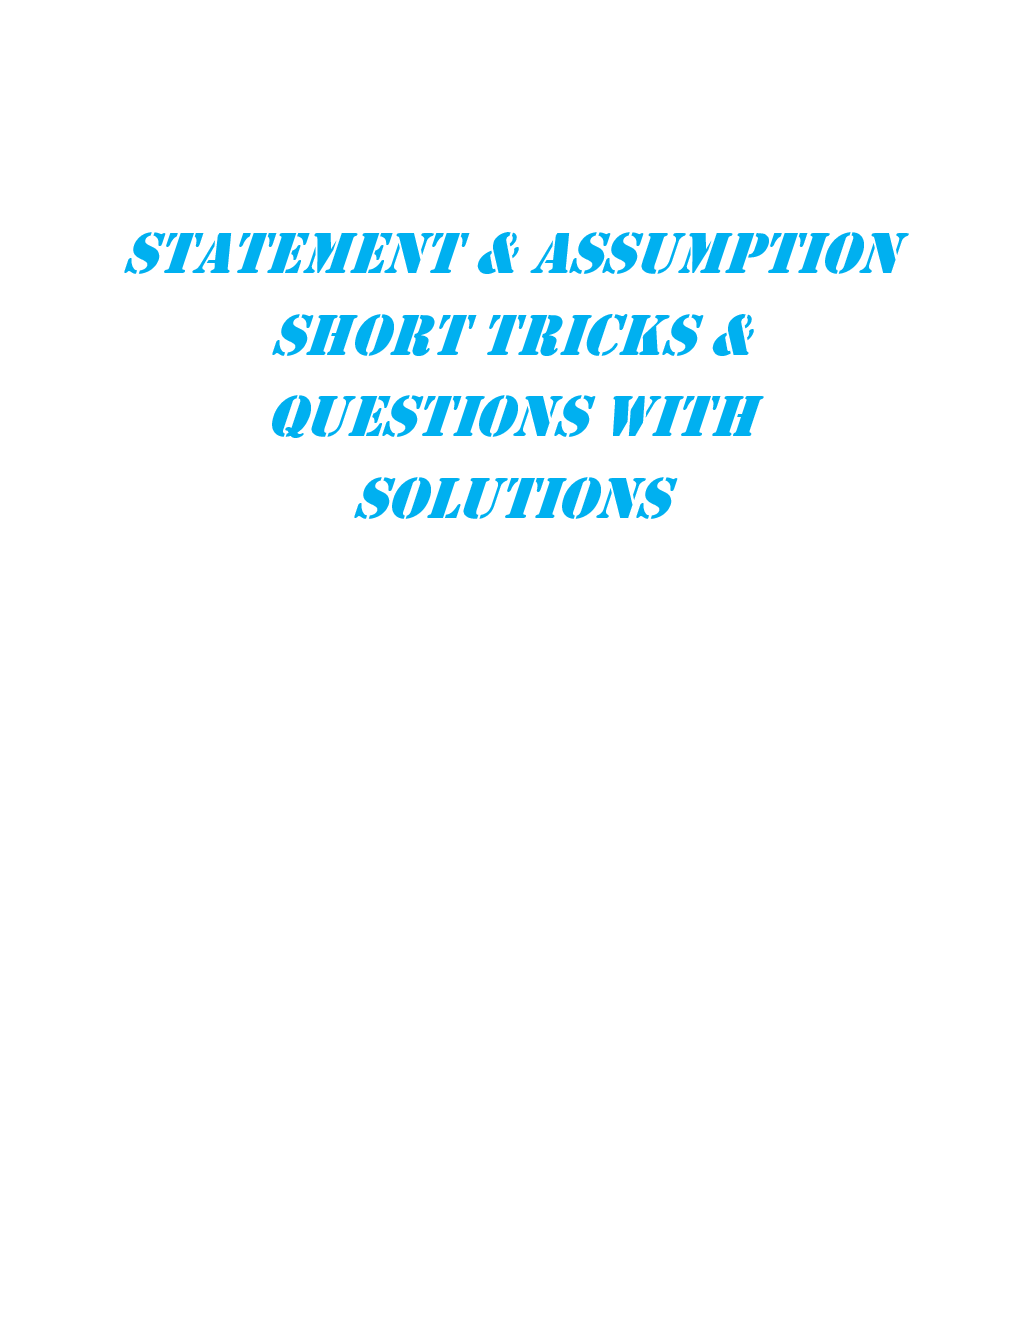 MCQs Reasoning (Statement & Assumption) With Solutions - Page 2